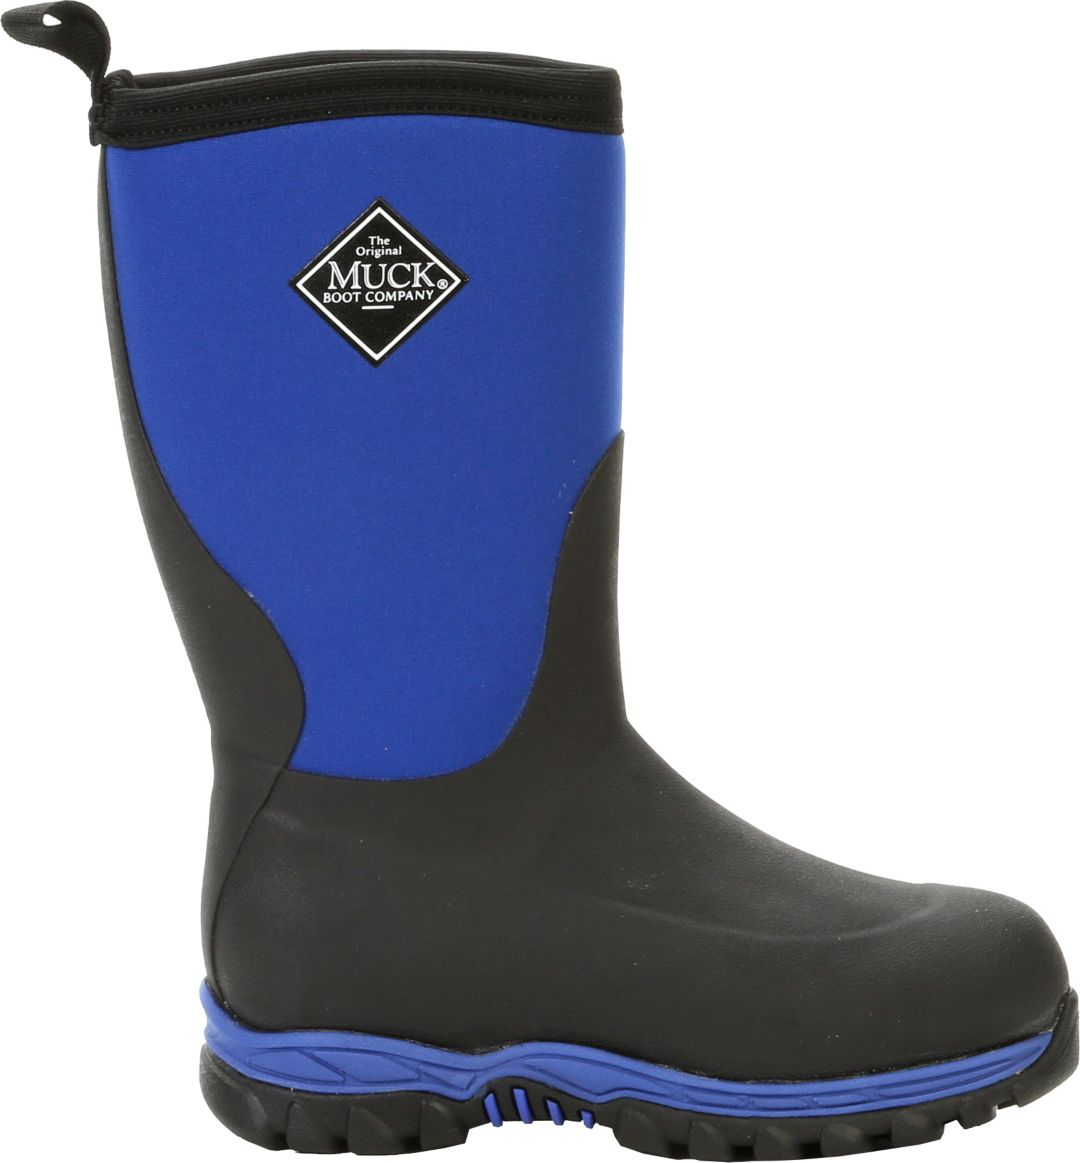 Muck Boots For Youth